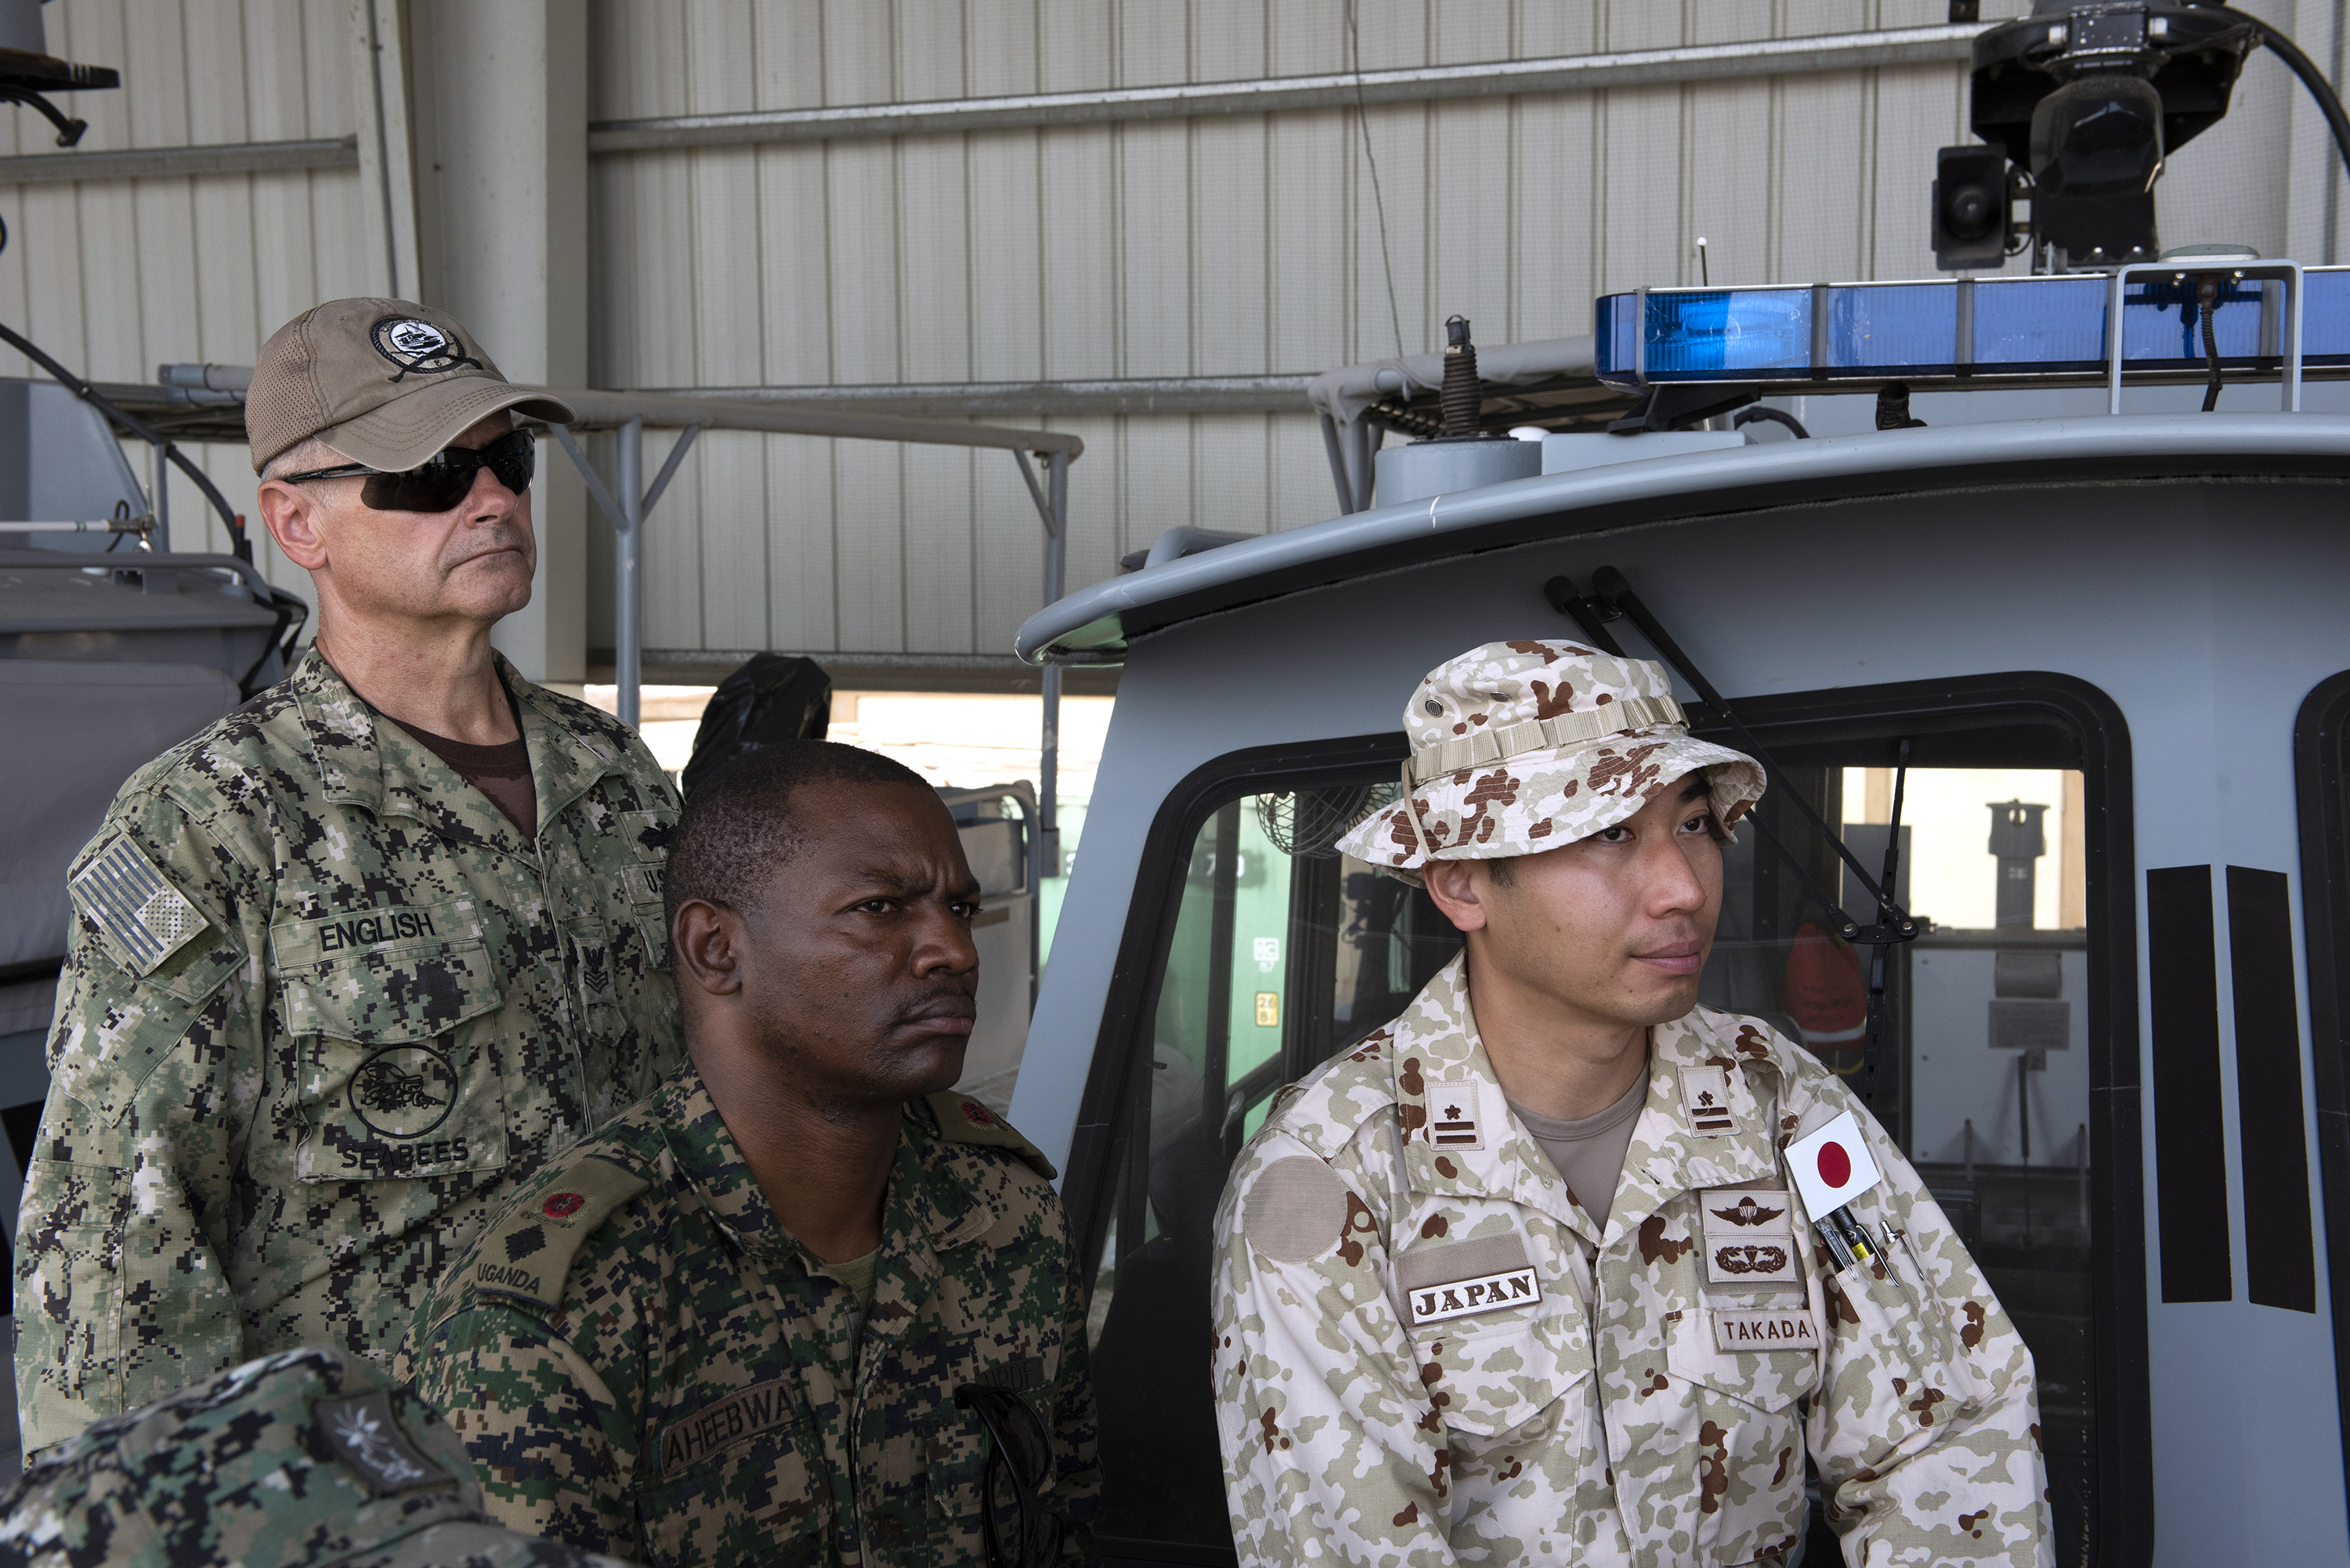 From left: U.S. Navy Construction Electrician 1st Class Richard English with Coastal Riverine Squadron 8 (CRS8), Ugandan Lt. Col. Nelson Aheebwa with the Ugandan People's Defense Force and Japanese Maj. Shinsuke Takada with the Japan Ground Self-Defense Force listen during a brief on Camp Lemonnier, Djibouti, Sept. 14, 2018. Both Aheebwa and Takada, foreign liaison officers from their respective countries assigned to Combined Joint Task Force-Horn of Africa, attended a brief on CRS 8 and toured one of their patrol boats. (U.S. Air National Guard photo by Master Sgt. Sarah Mattison)